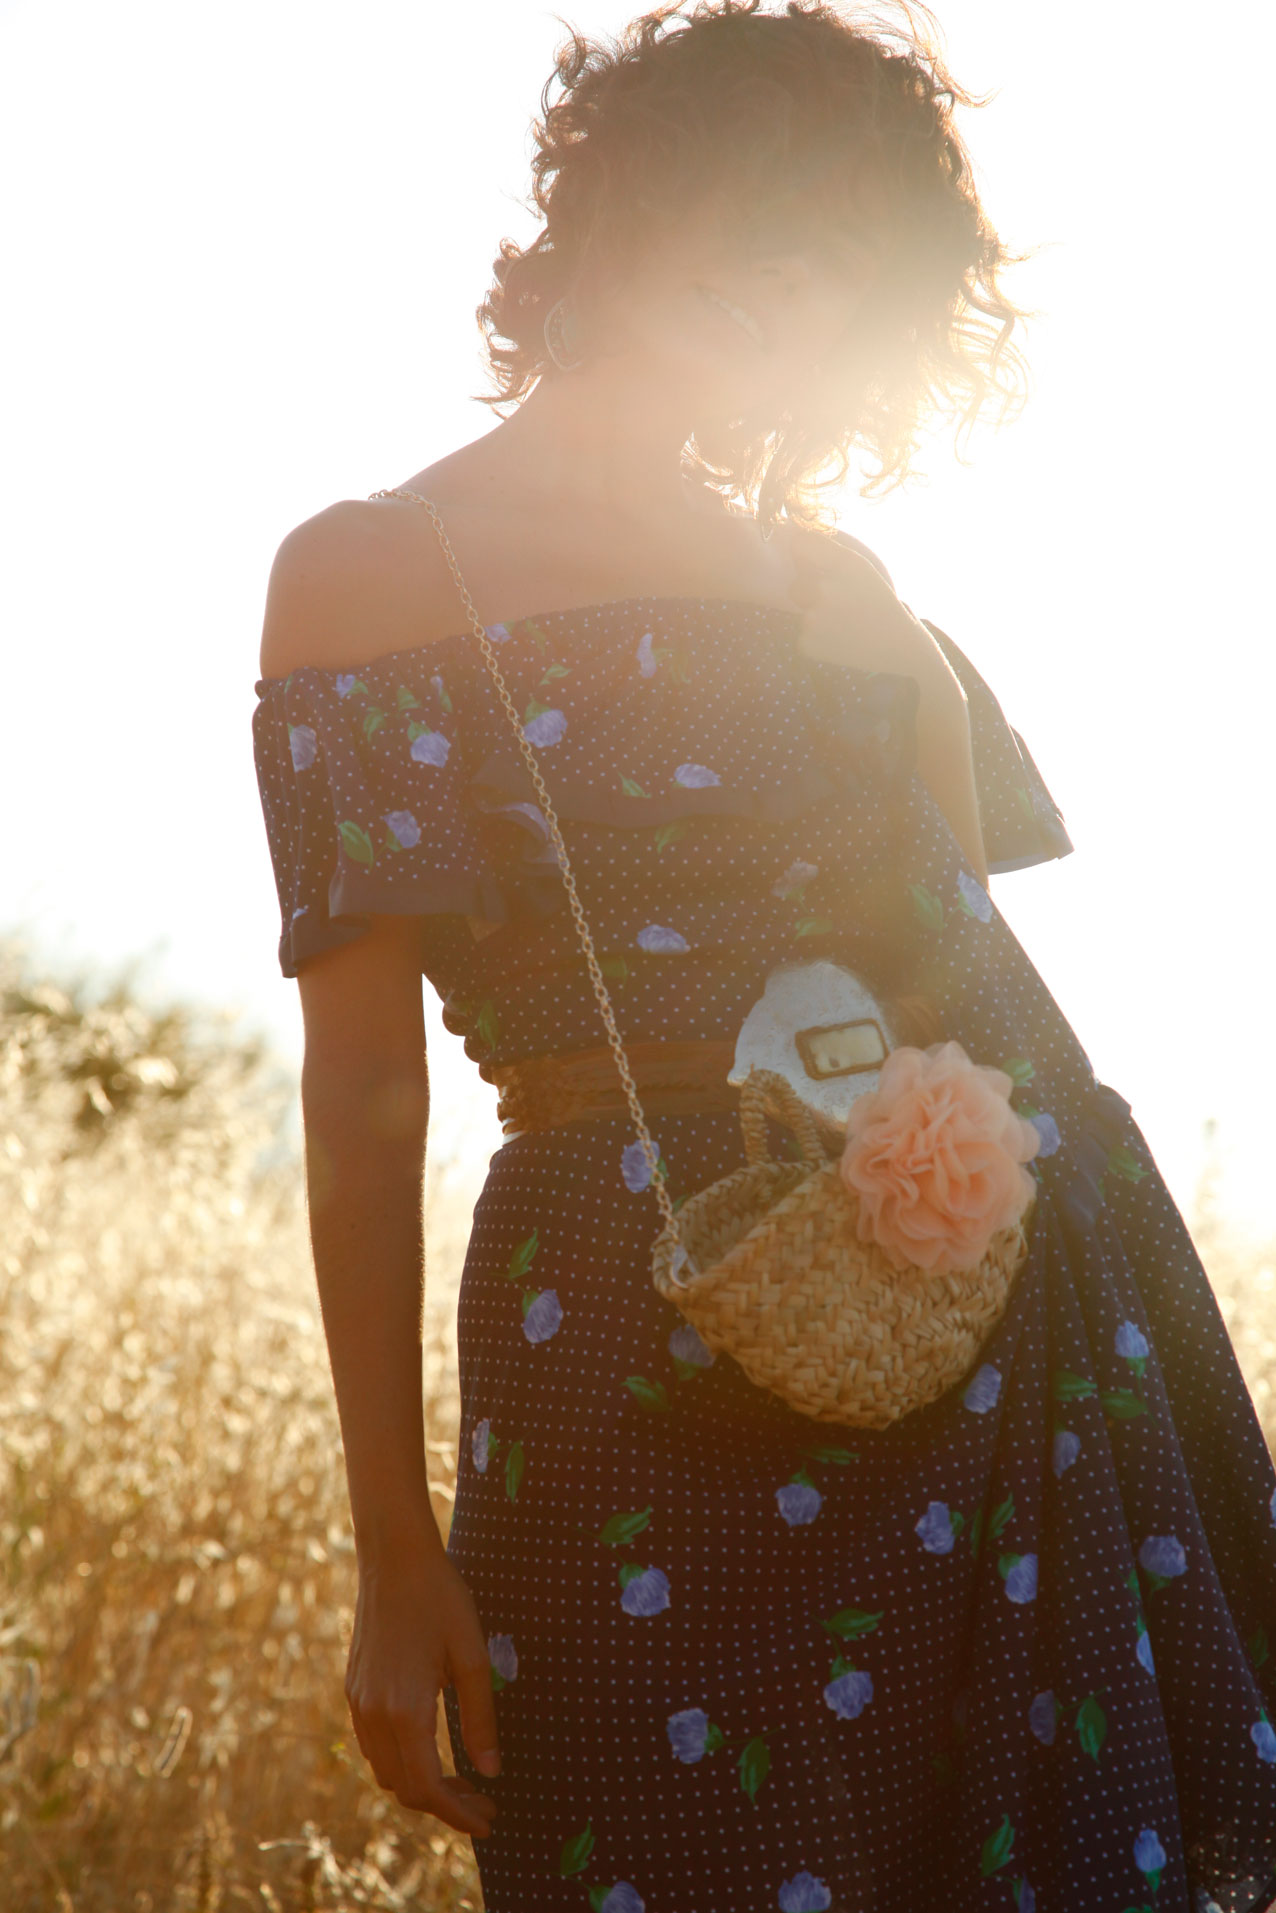 off_shoulder_dress-dolce-country-romantic_small_bag-cool_lemonade-streetstyle